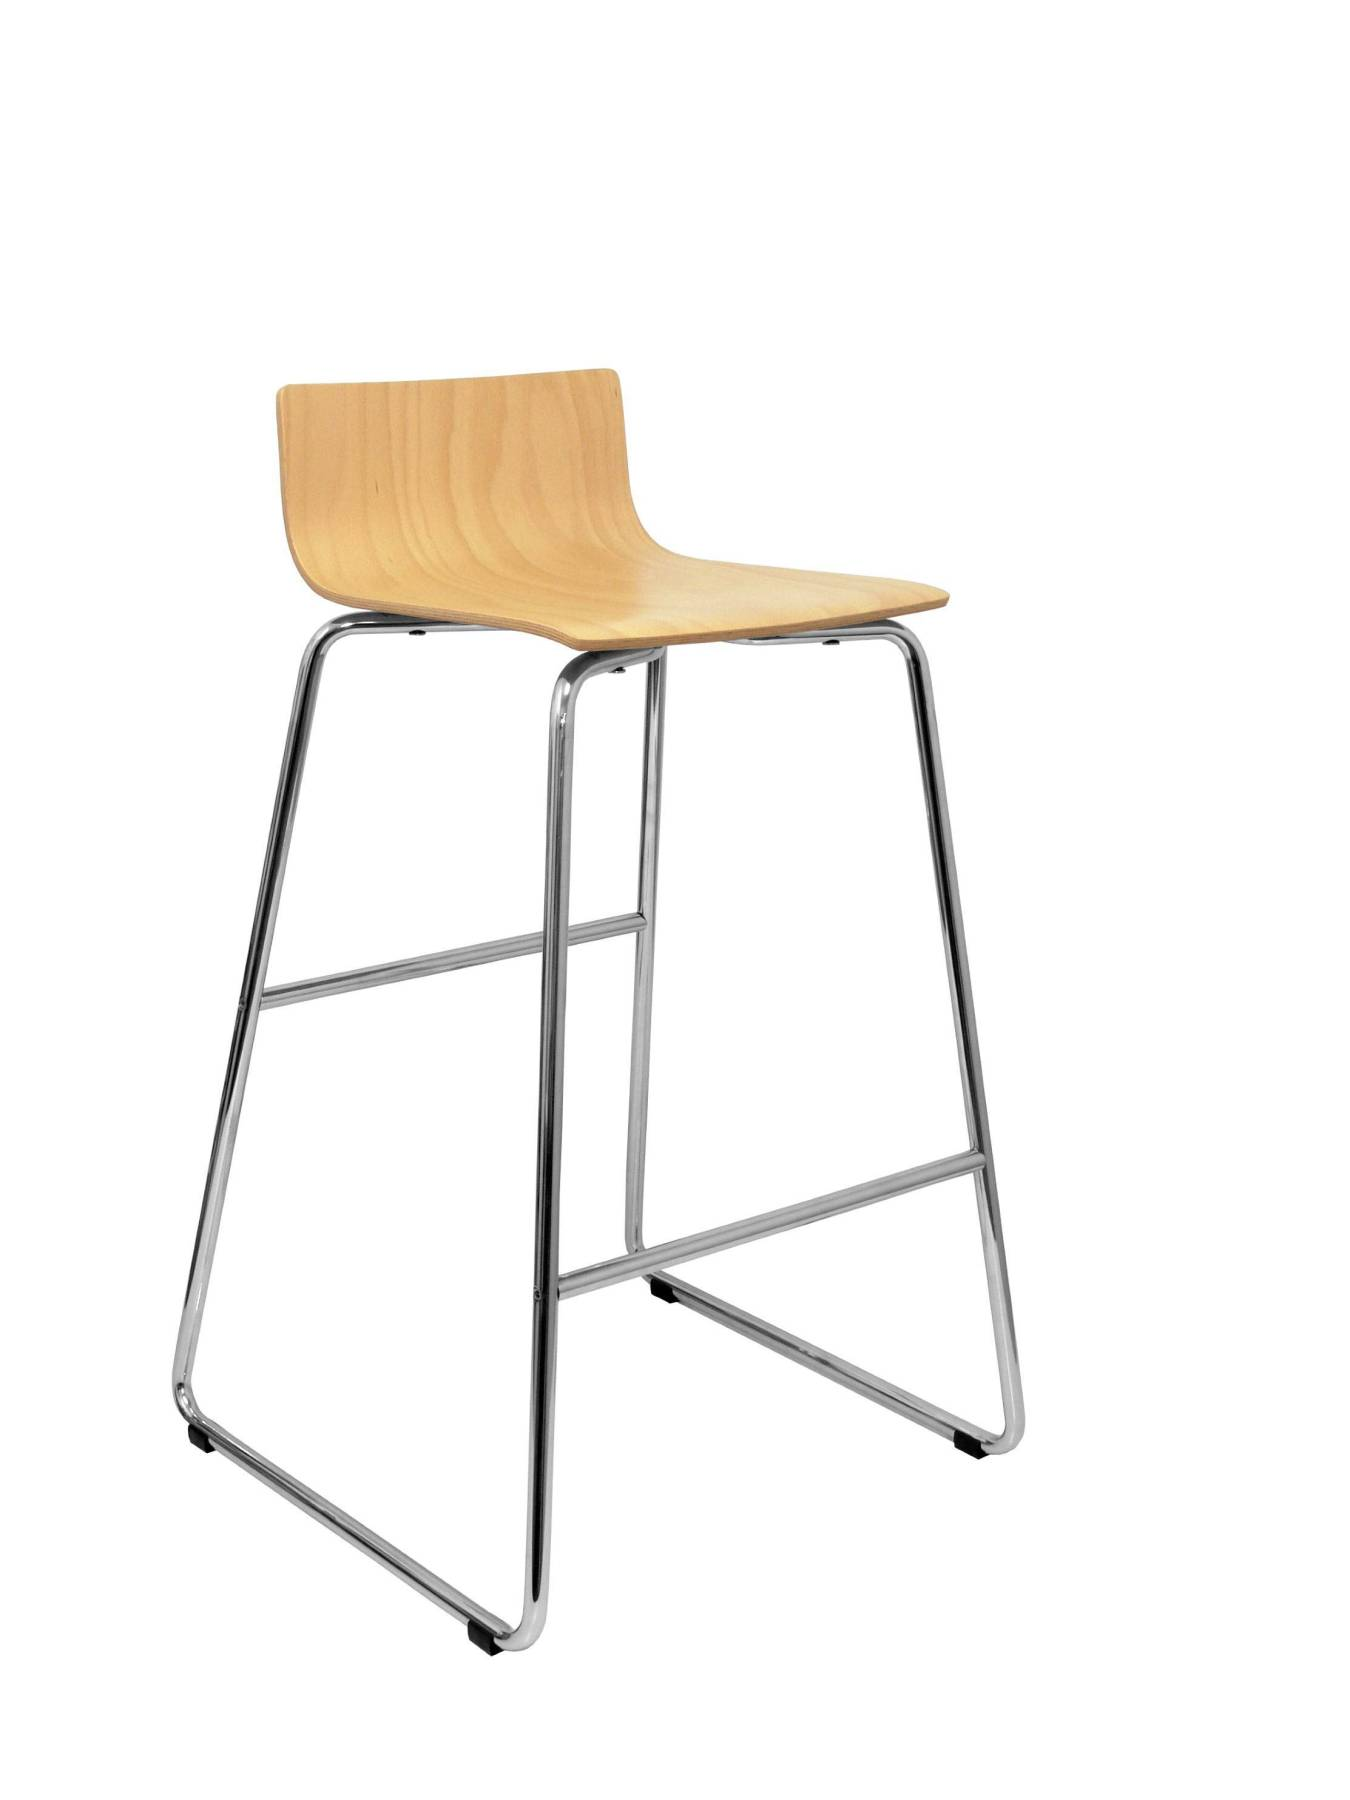 Stool Vending With Chrome Bold And Dipstick Foot Pegs-up Seat Structure From Colored Wood Beech TAPHOLE AND CURLED Model